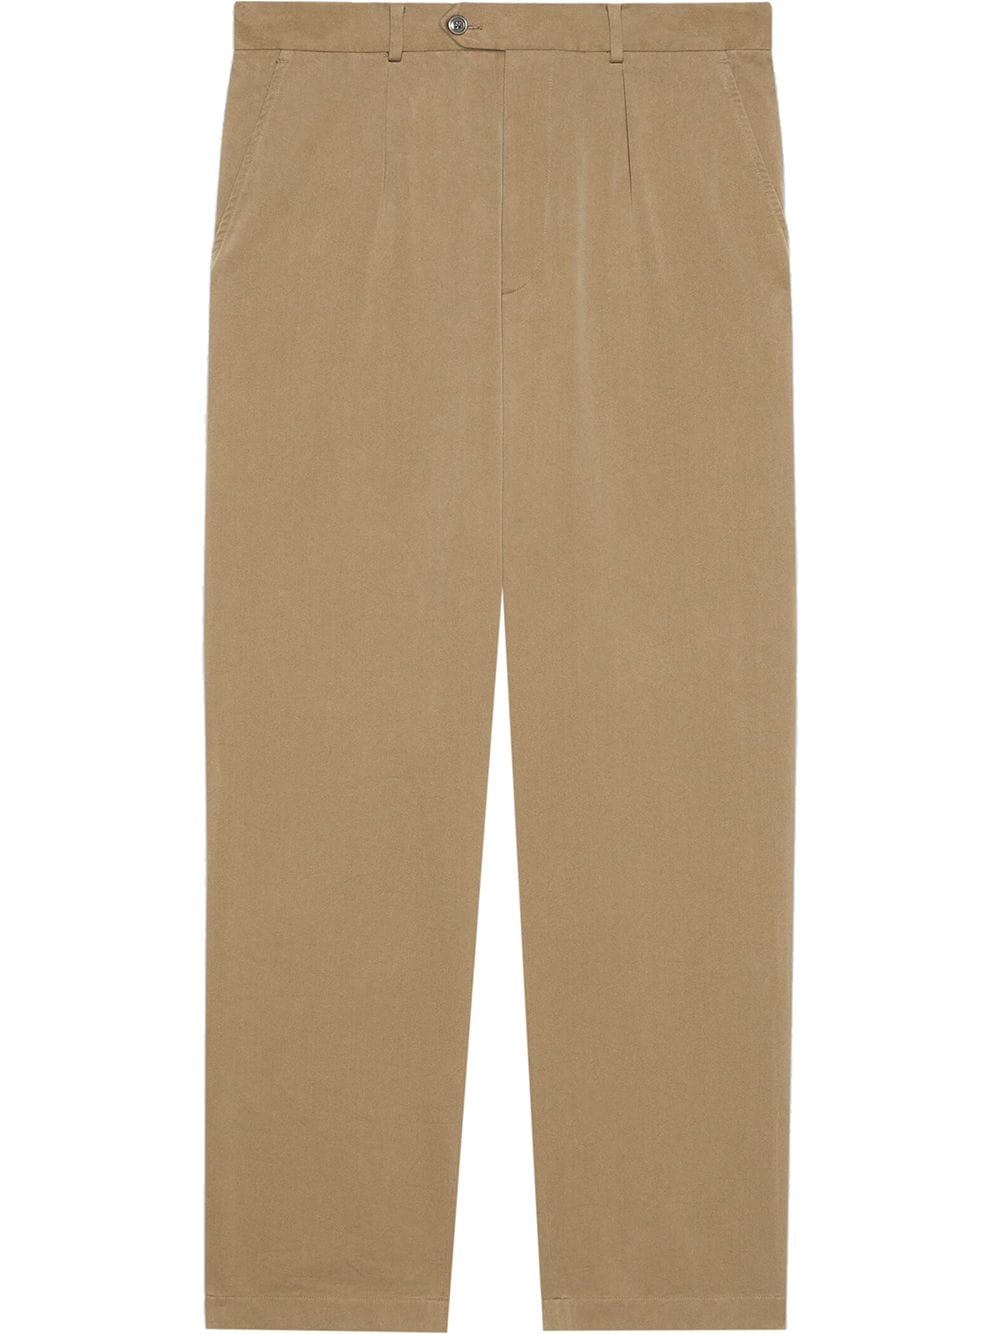 Gucci high-waist tailored trousers - Nude von Gucci